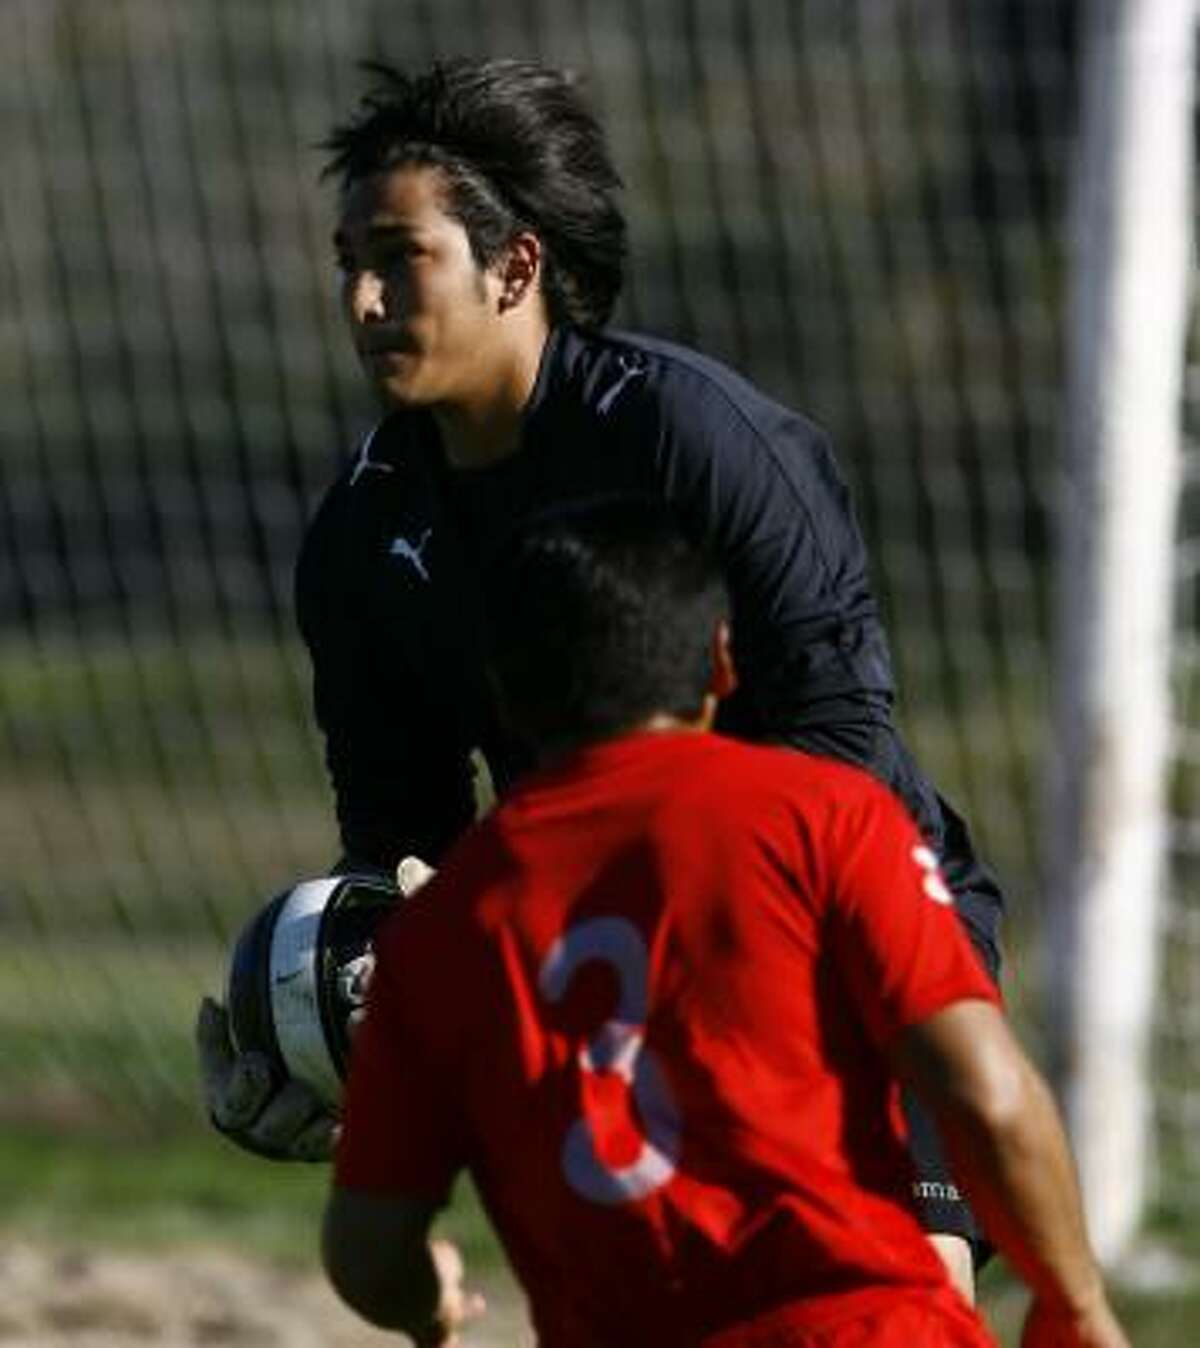 César Omar Hernández, making a save for his team, the Panthers, plays soccer at a private park in north Houston.